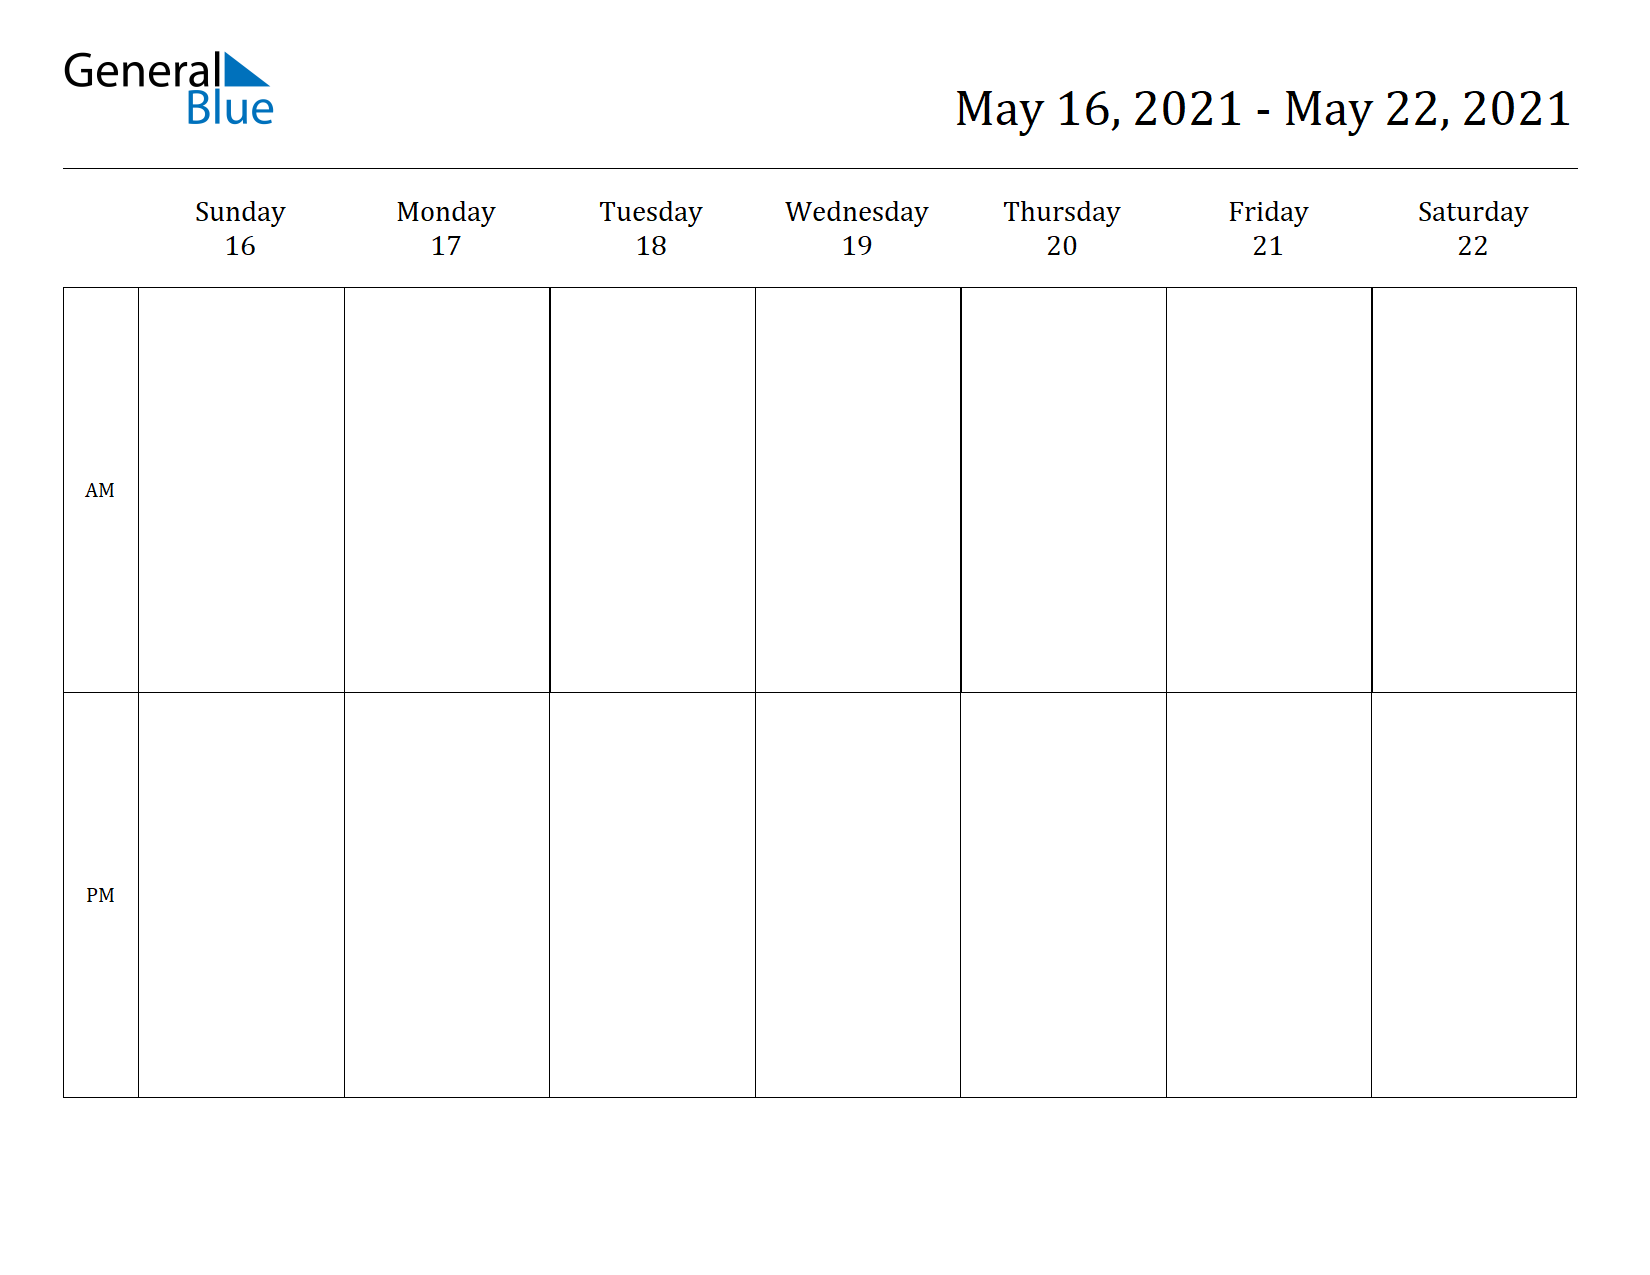 Weekly Calendar for May 16, 2021 to May 22, 2021